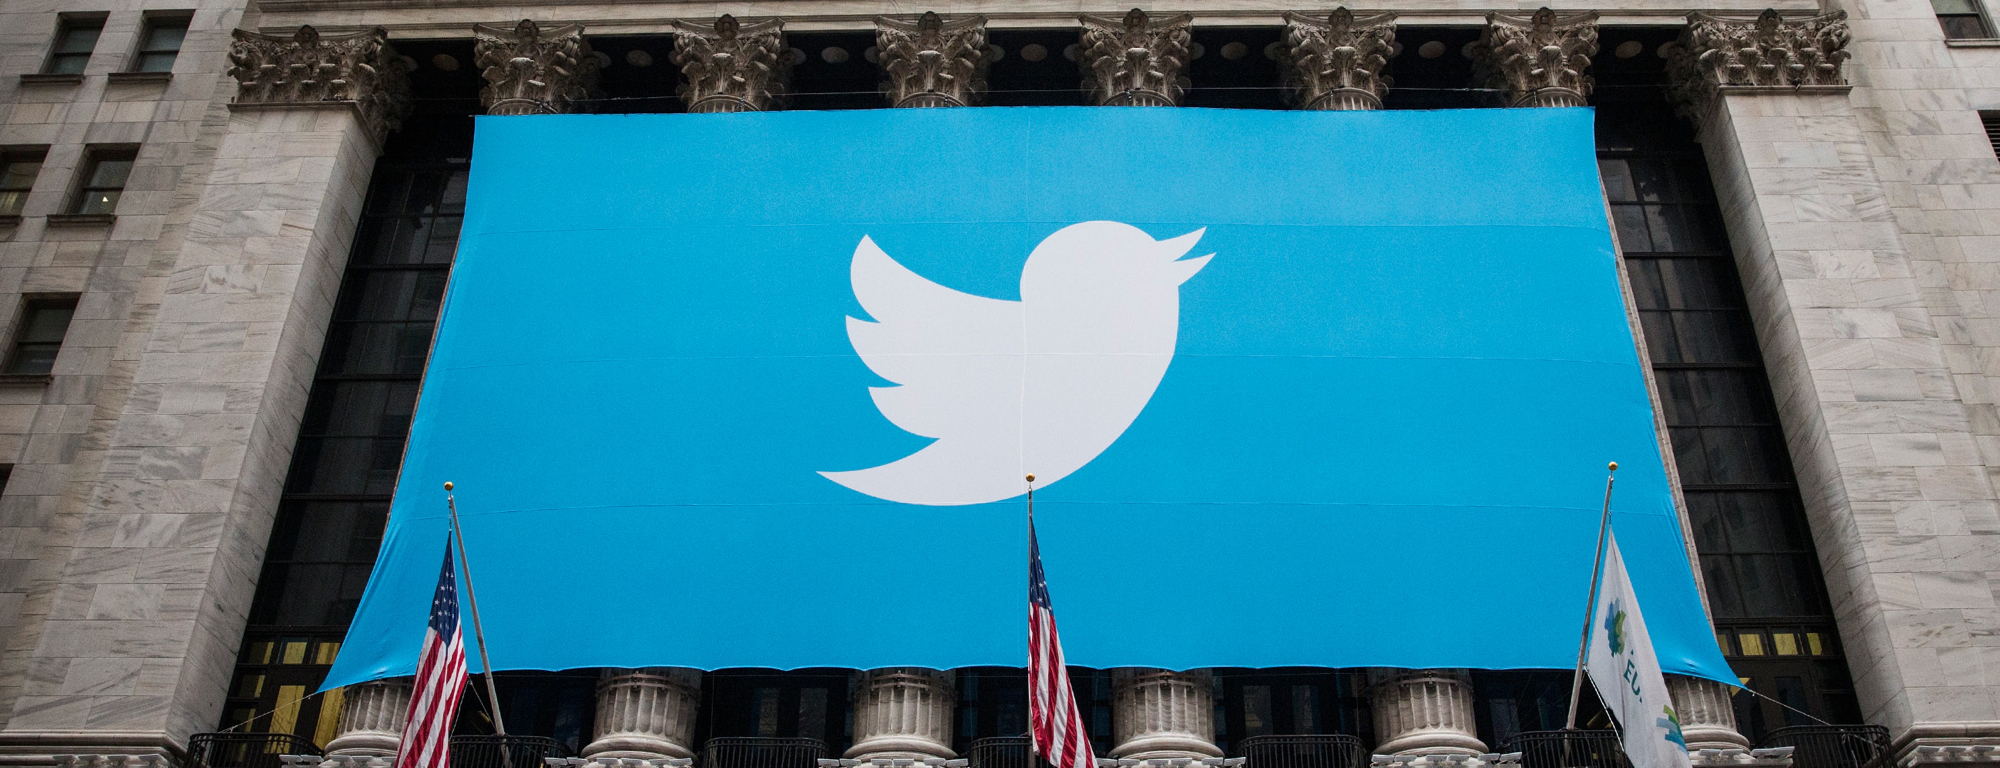 Twitter Increases its Focus on Asia